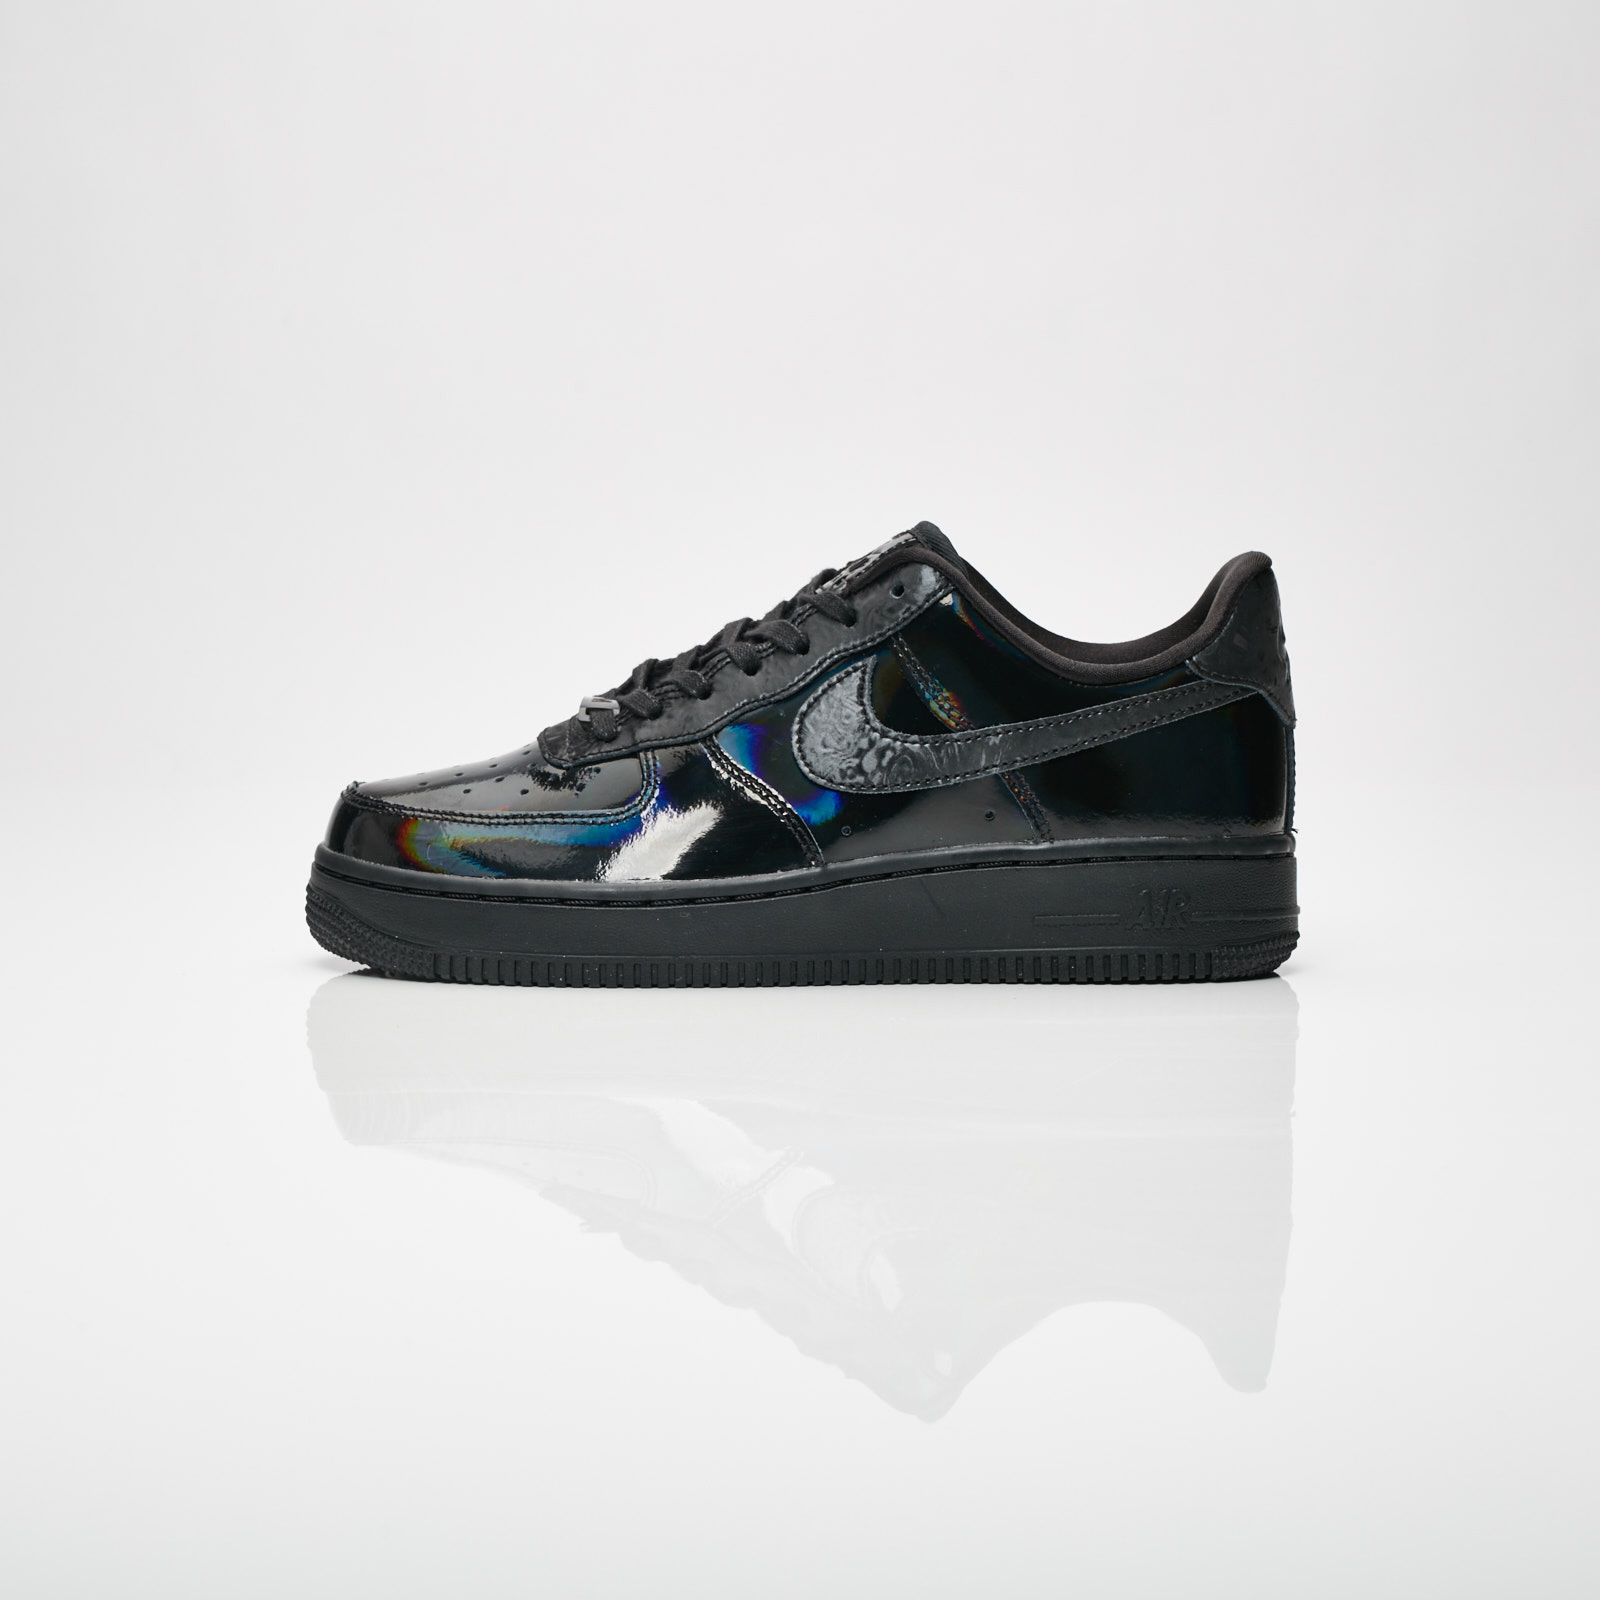 Details about WOMENS NIKE AIR FORCE 1 '07 LX | SIZE 6 | 898889 100 | SUMMIT WHITE